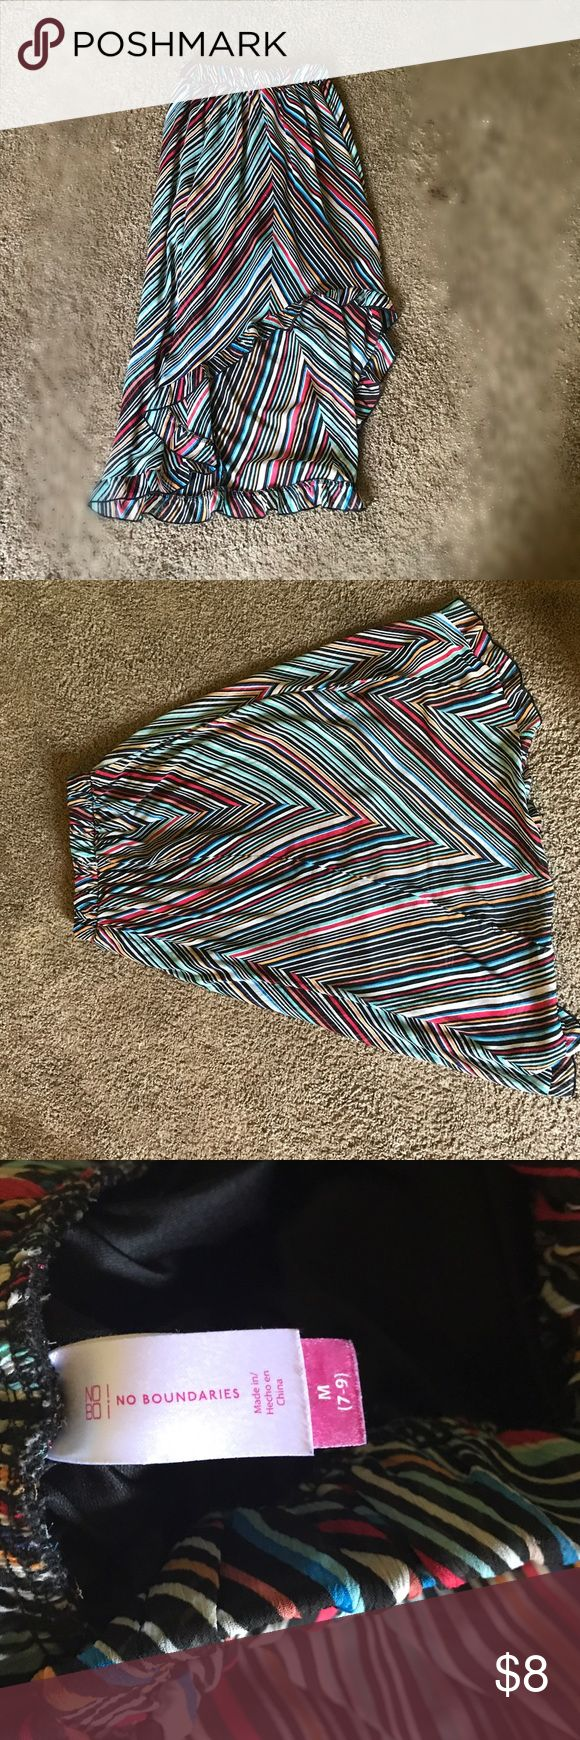 Colorful Maxi Skirt 💓 Beautiful a symmetrical cut Maxi in excellent condition. Perfect for summer and sandals. Size medium, elastic waist. No Boundaries Skirts Maxi